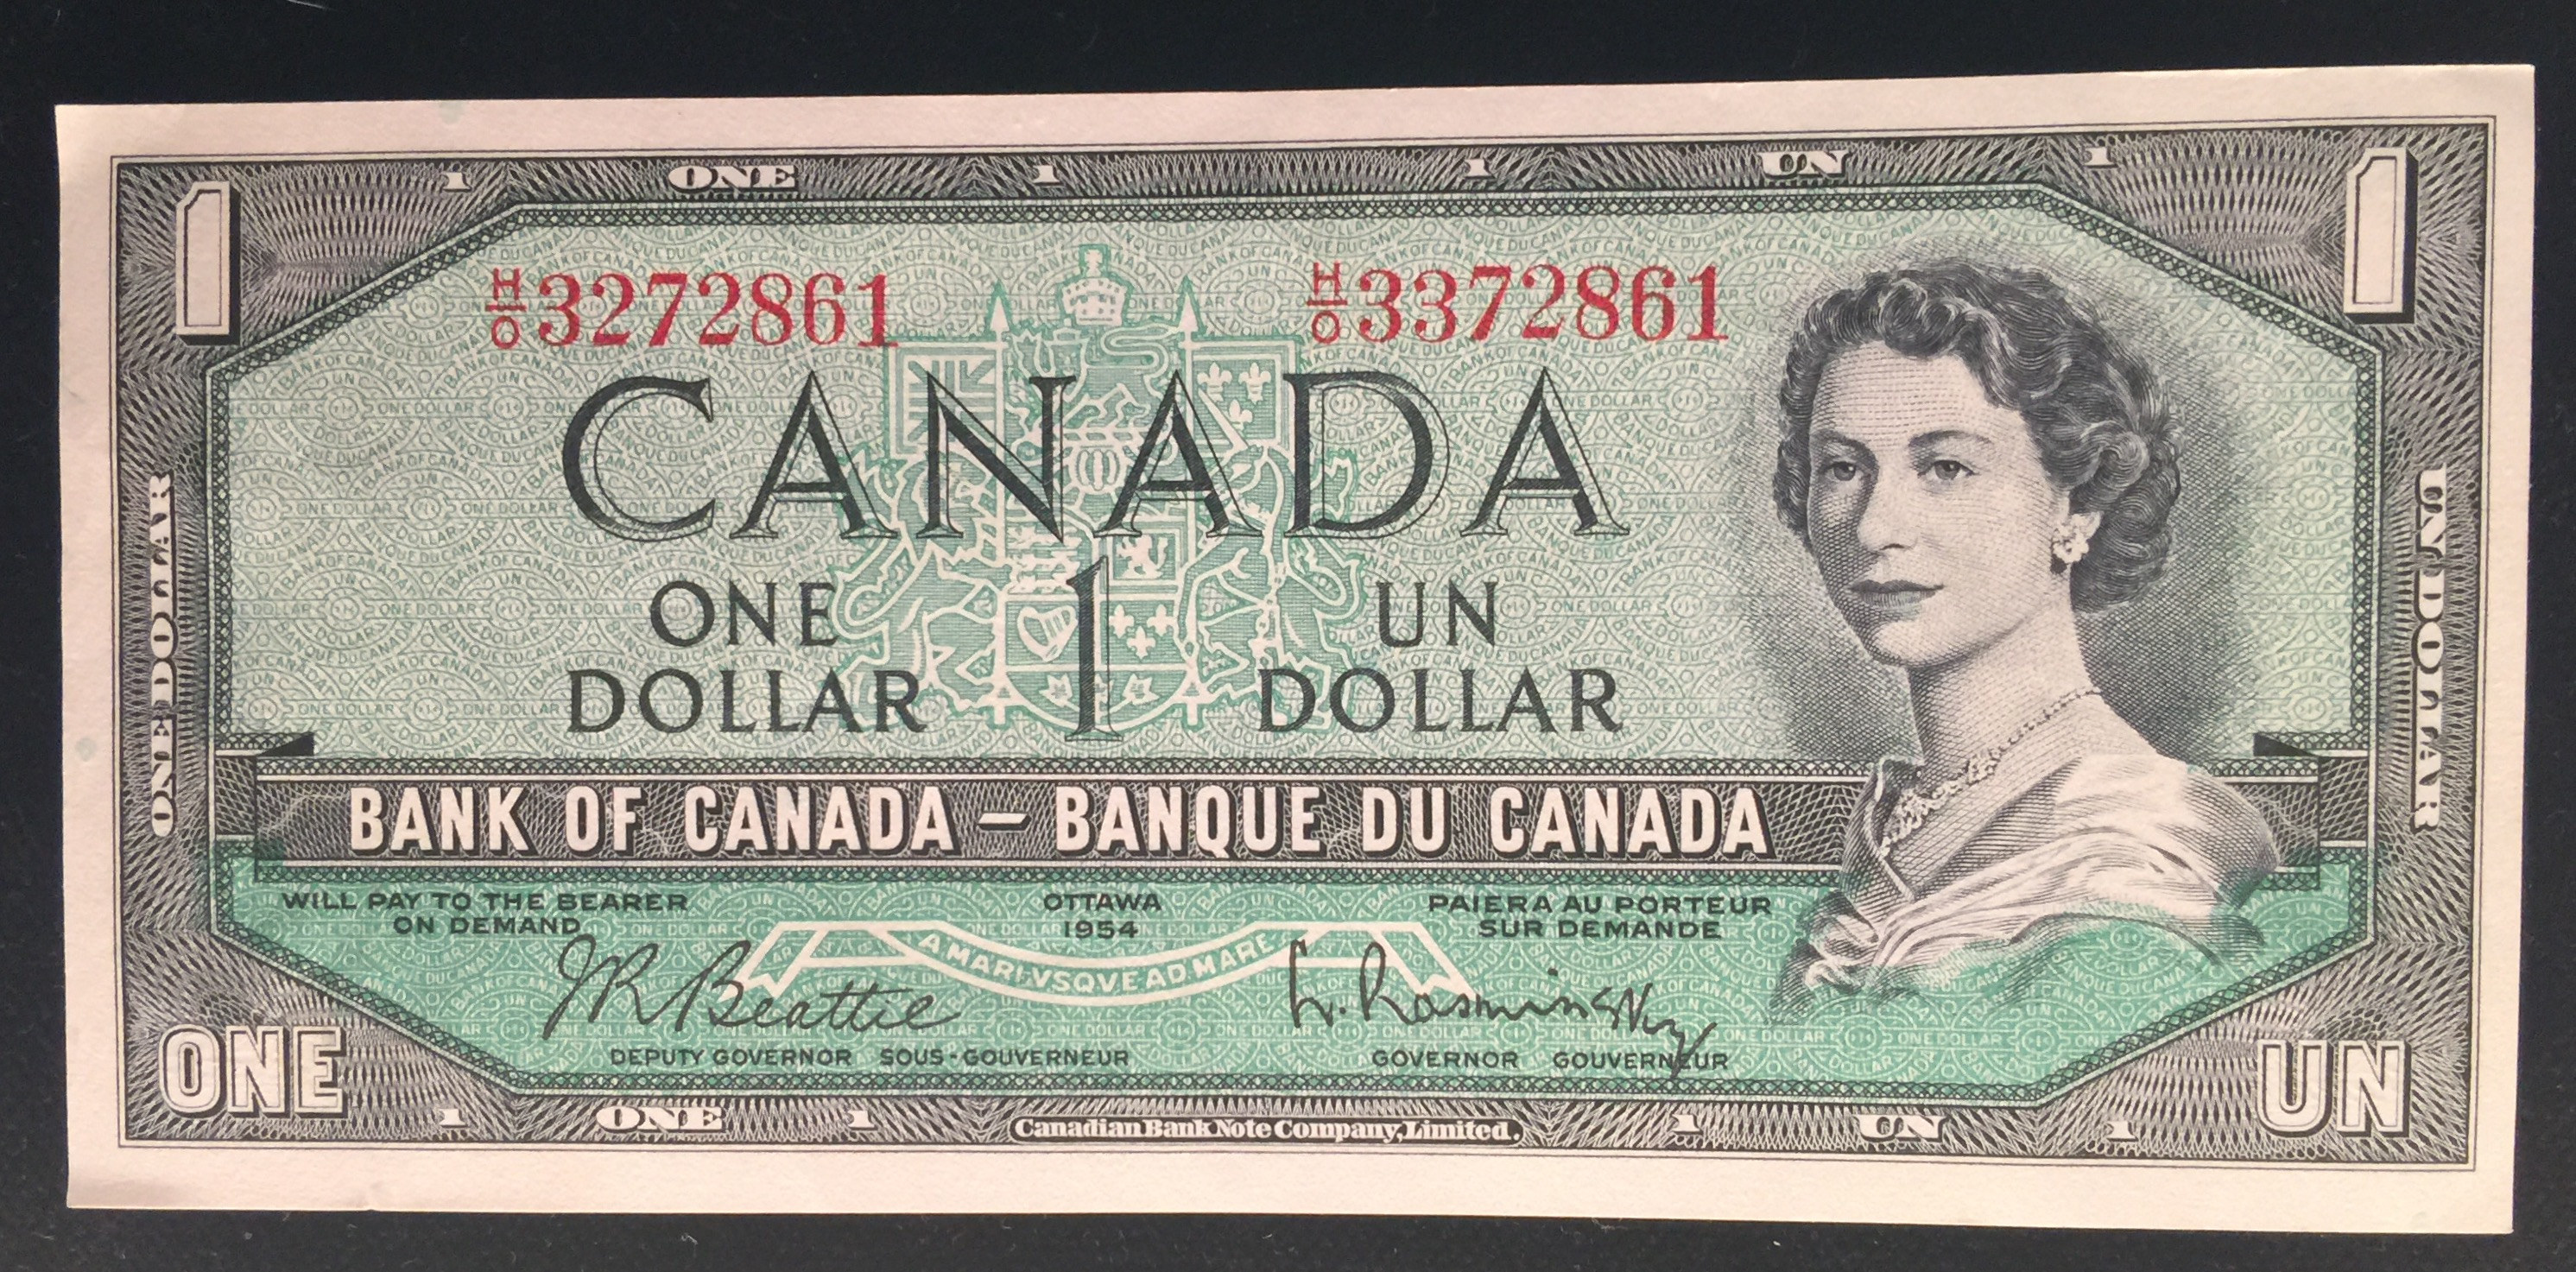 KMG Gold Recycling 1954 Canada Mismatched Serial Number One Dollar Note